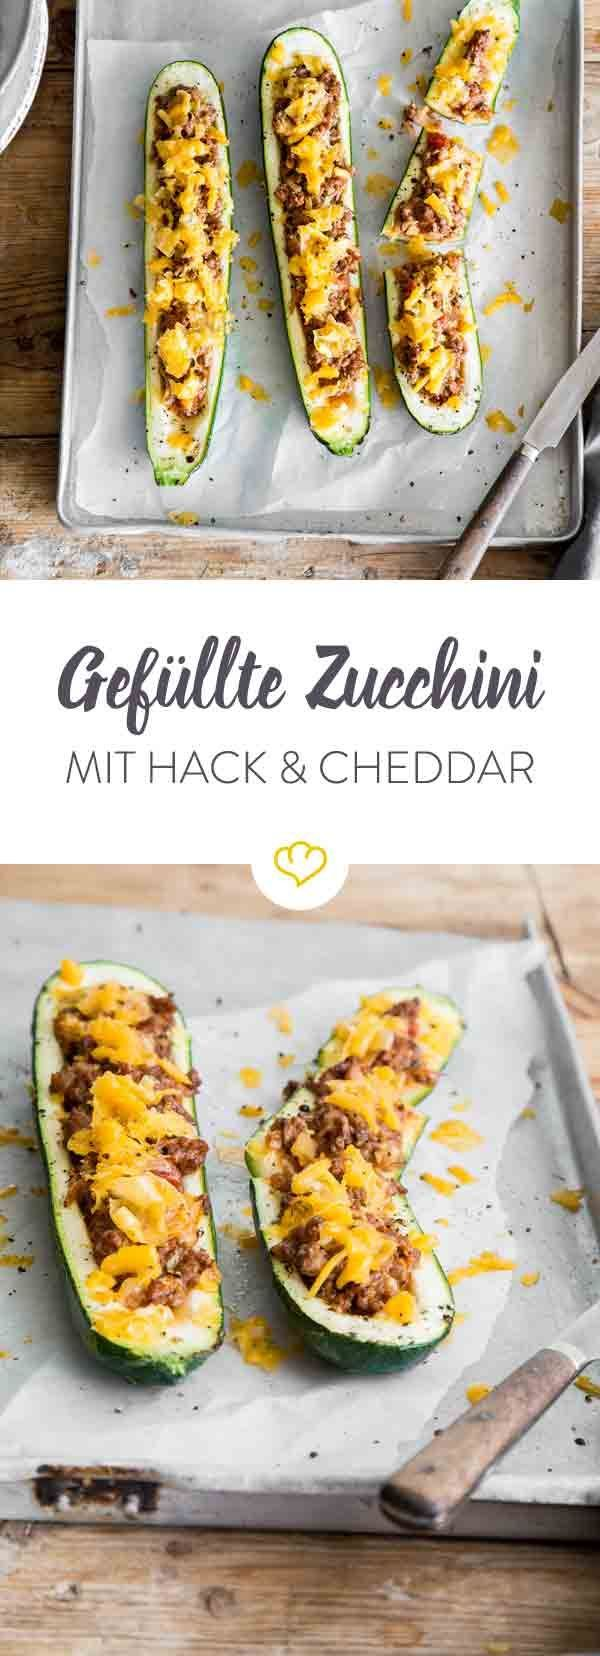 die besten 25 zucchini ideen auf pinterest gegrillte zucchini einfache zucchini rezepte und. Black Bedroom Furniture Sets. Home Design Ideas